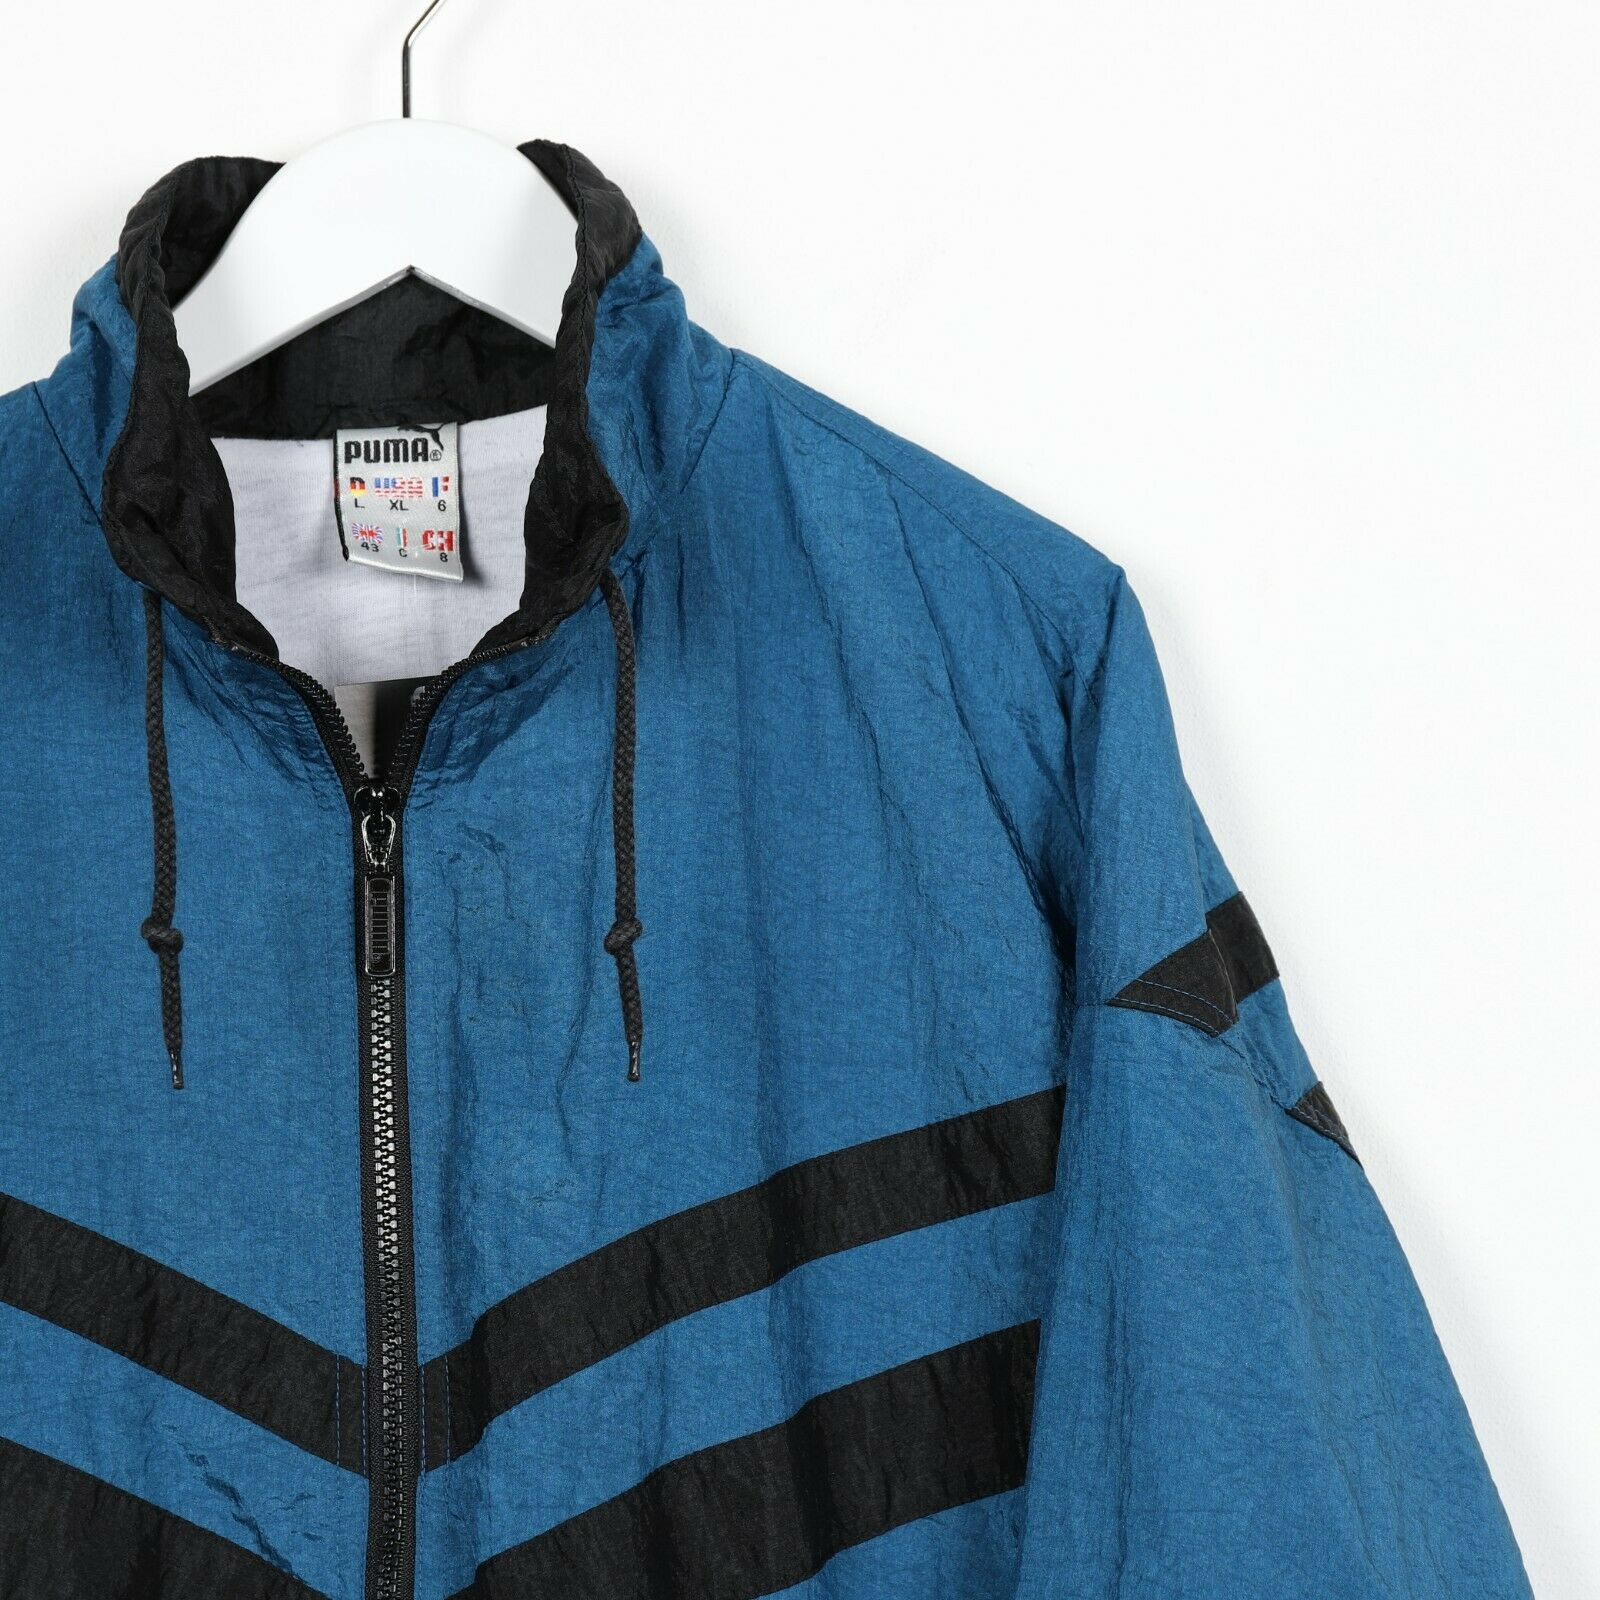 Vintage 90s PUMA Small Logo Soft Shell Windbreaker Jacket Blue | Large L